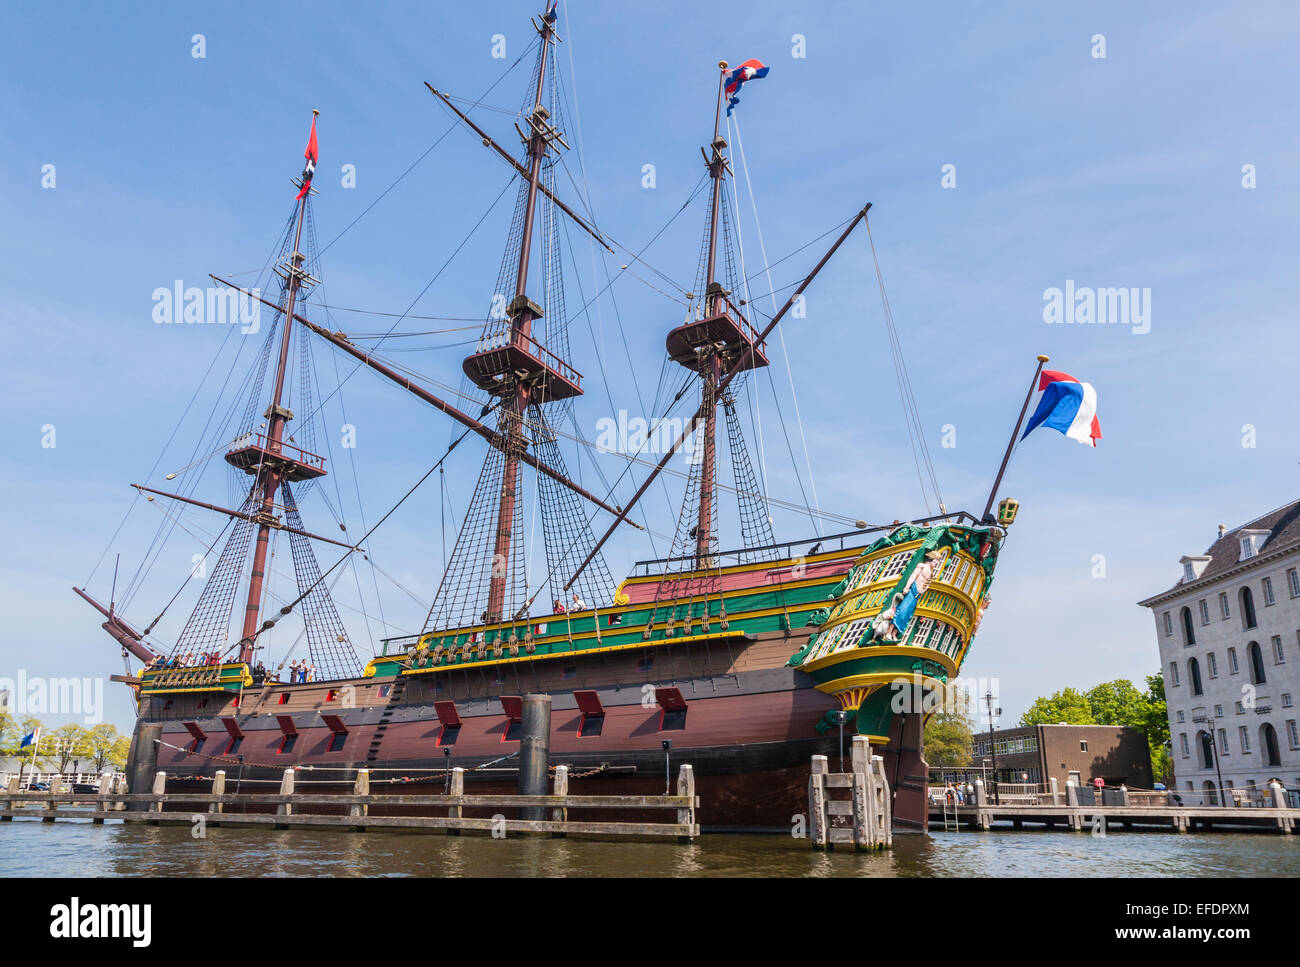 Replica of the historic Dutch East India Company ship 'the Amsterdam', a tourist attraction moored outside - Stock Image